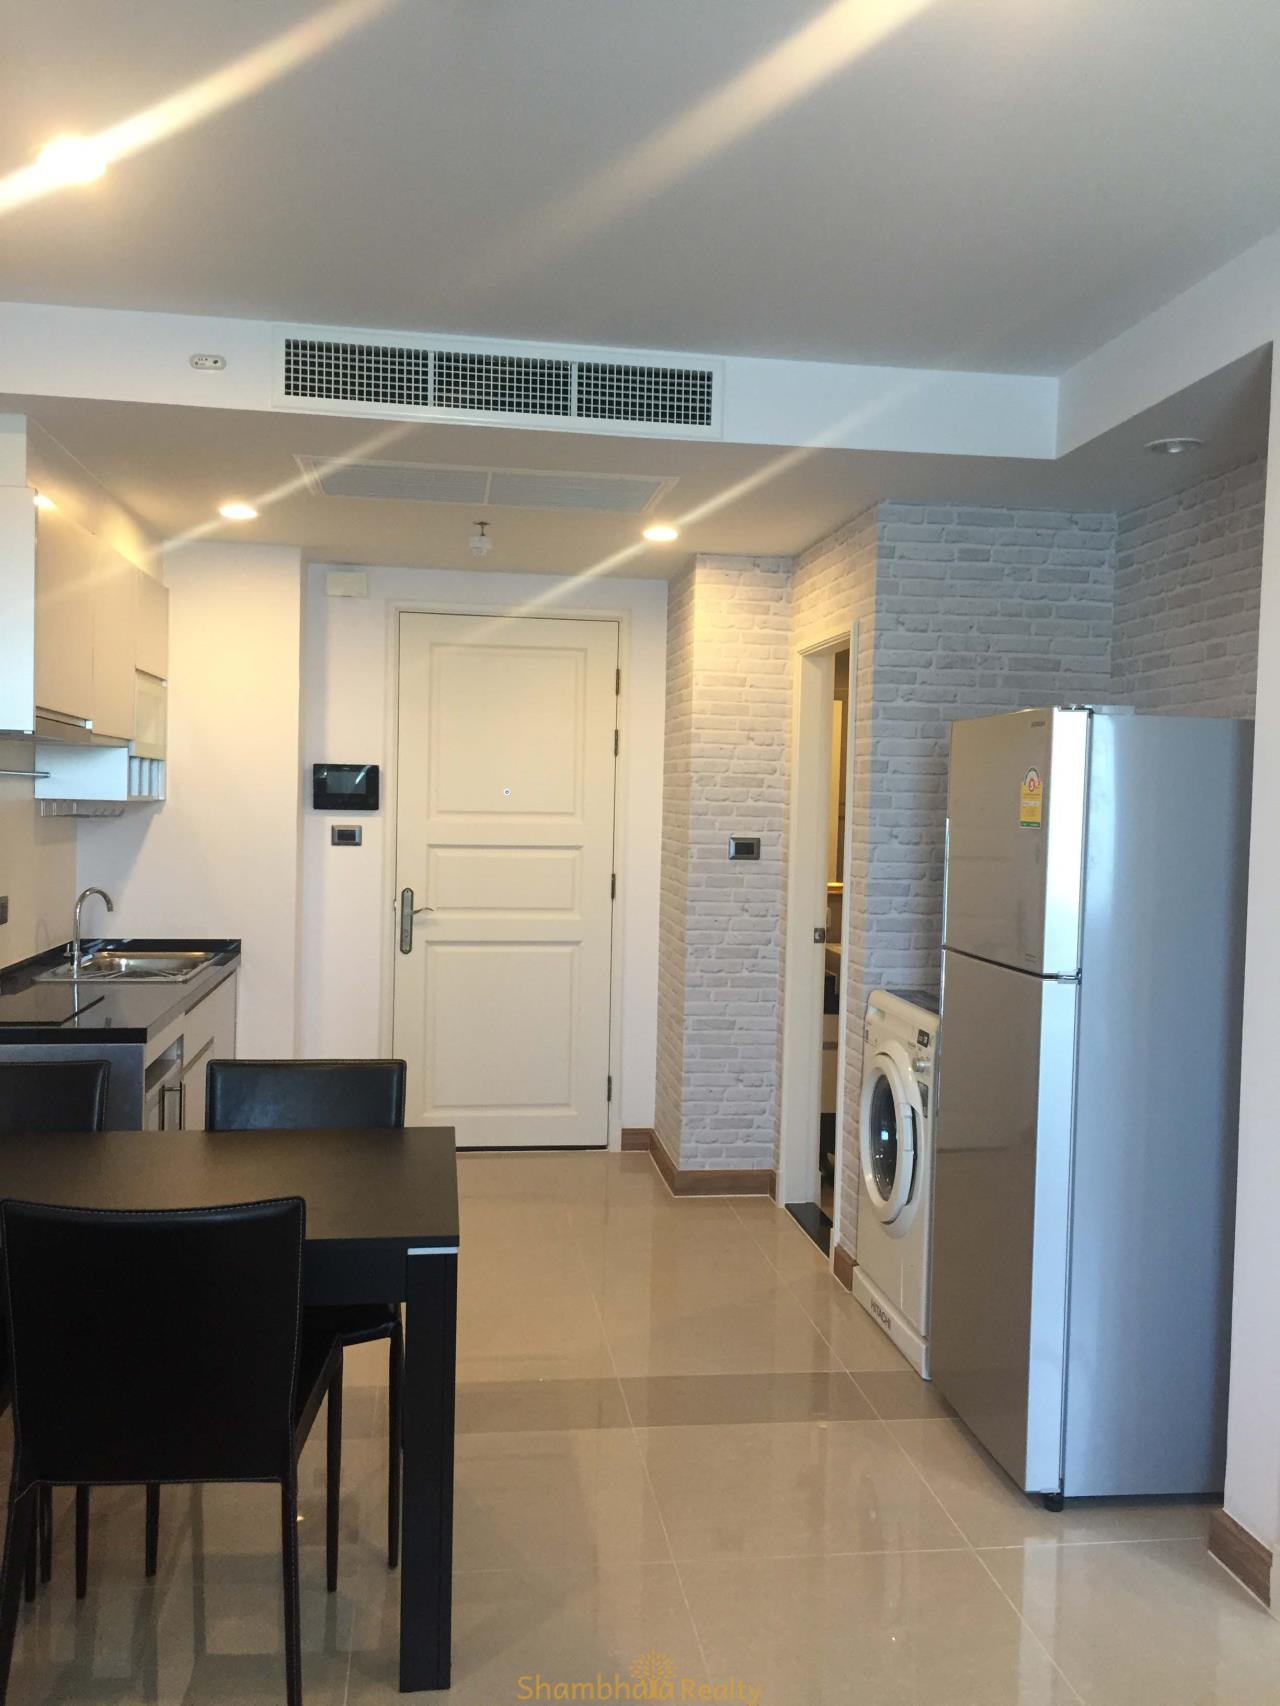 Shambhala Realty Agency's Supalai Wellington Condominium for Rent in Thiam Ruam Mit 27 Rd, Huai Khwang 6